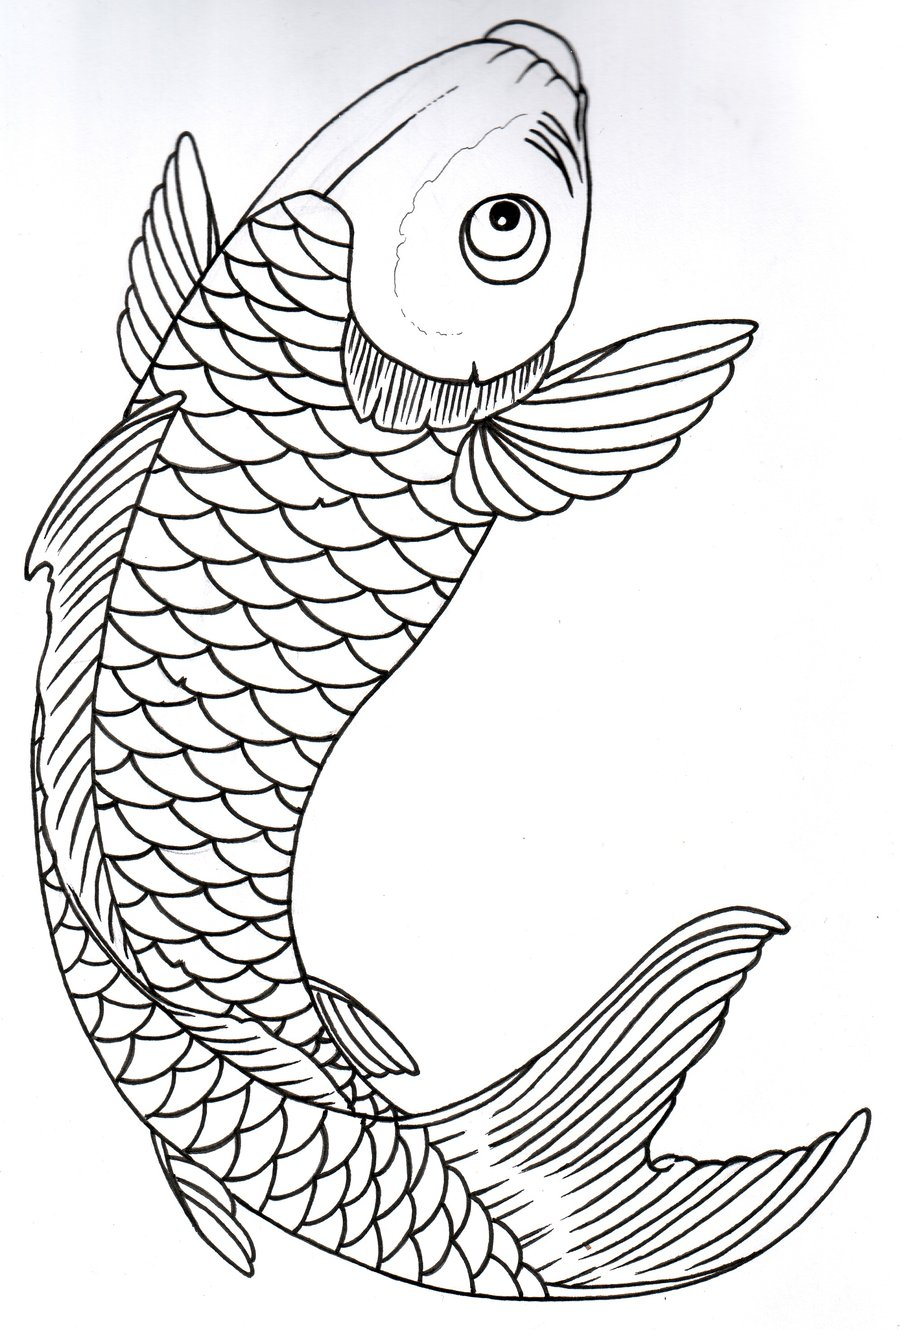 Fish Drawing Template at GetDrawings.com   Free for personal use ...